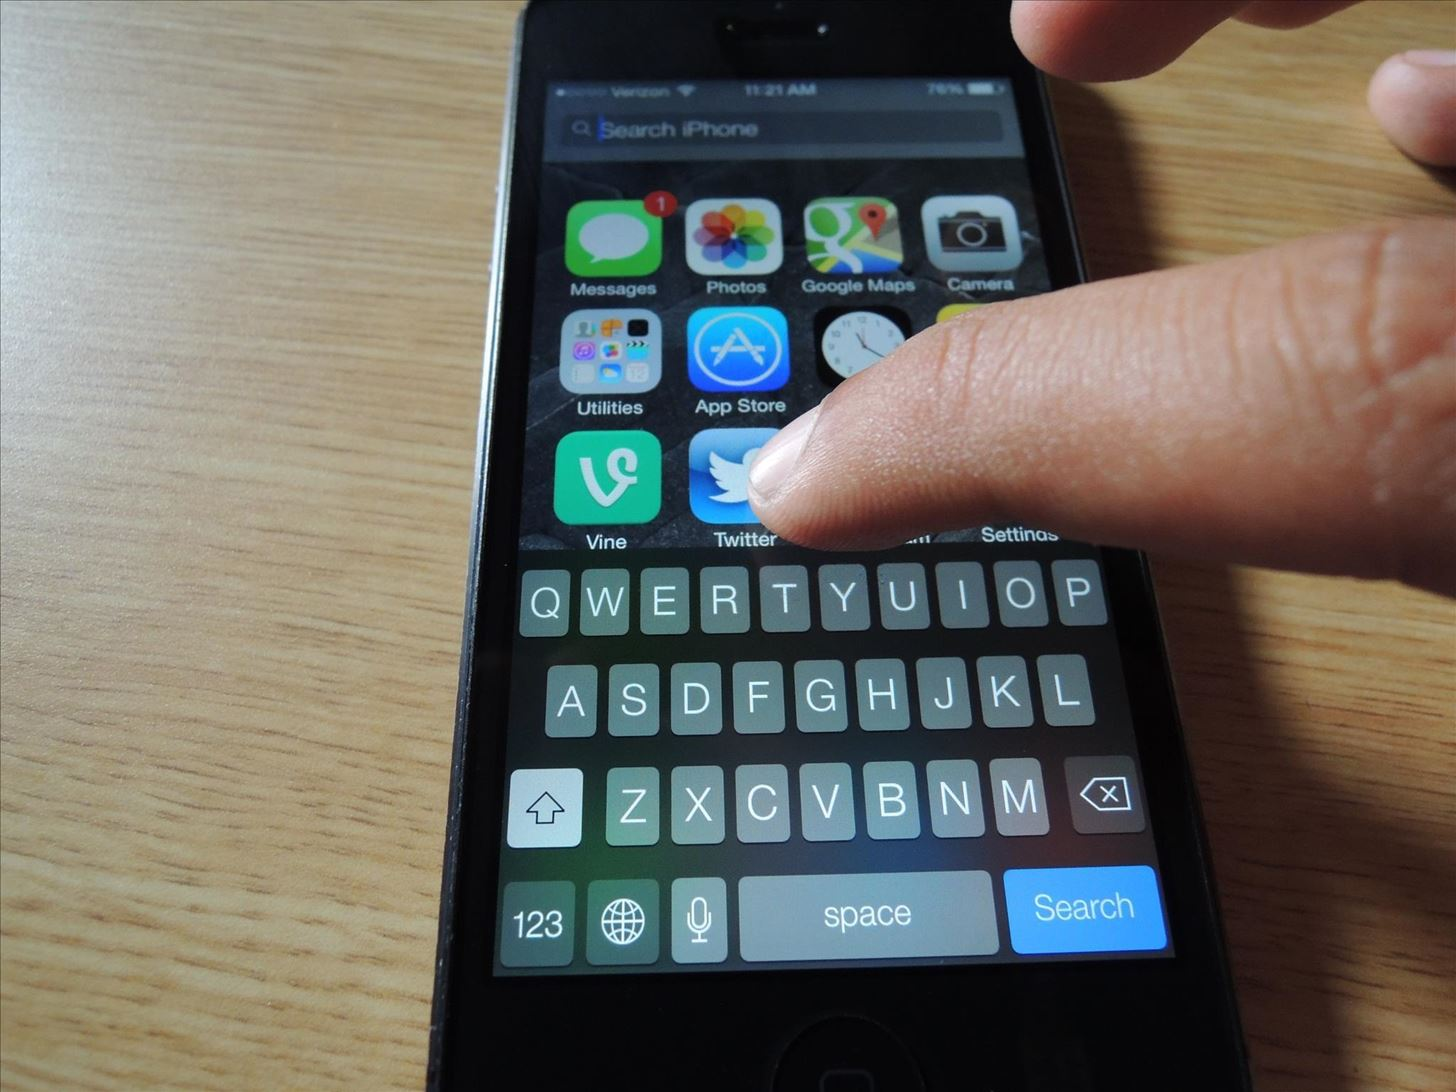 How to Open Spotlight Search in iOS 7 to Find Apps, Contacts, Music, and More